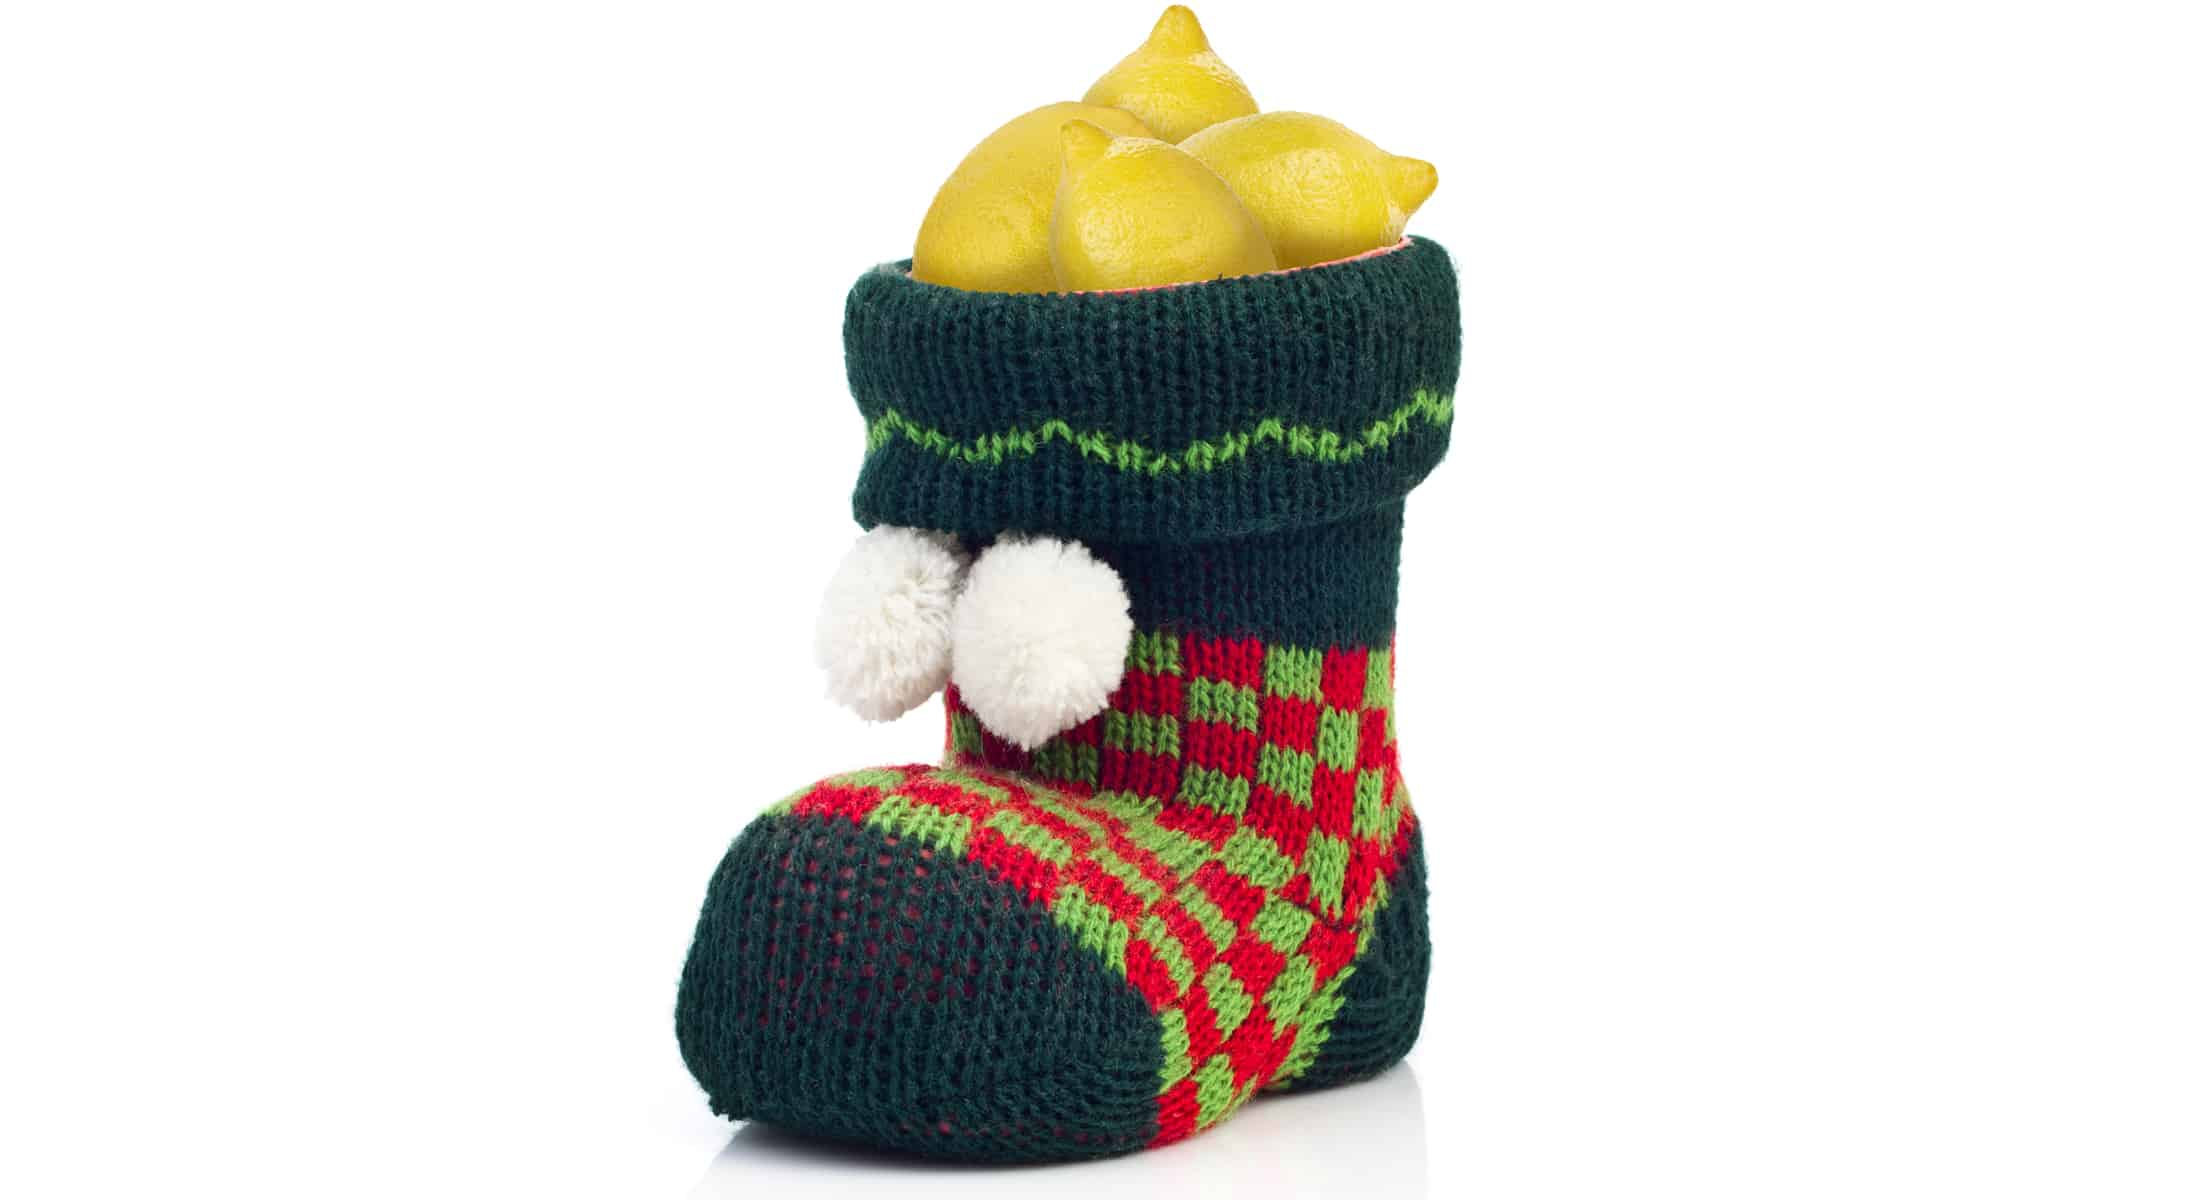 Storing lemons in your socks is as dumb as data without context